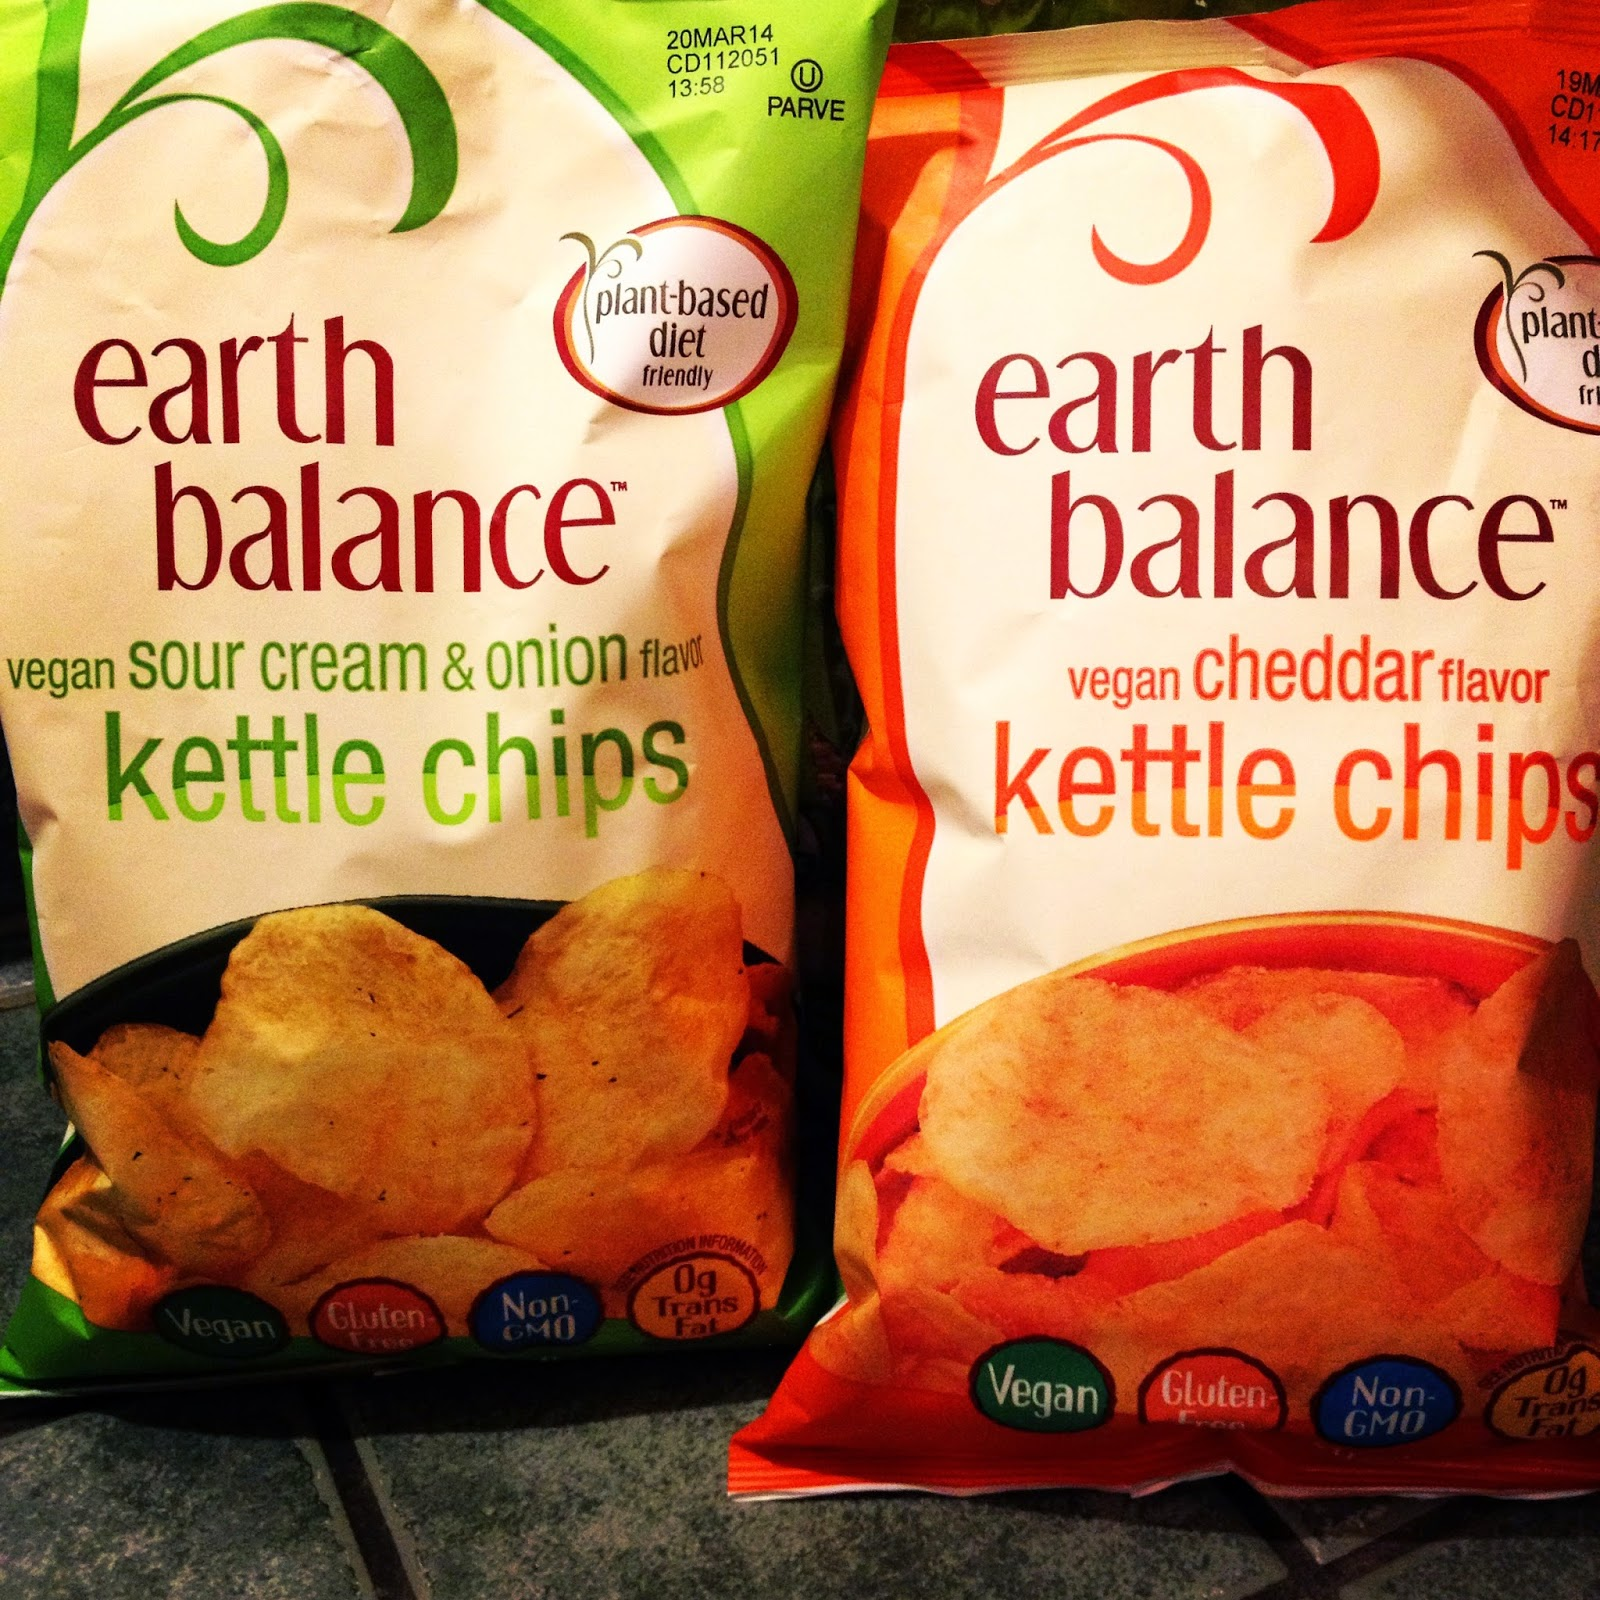 Plant-based Vegan Gluten-Free Sour Cream and Onion and Cheddar Kettle Chips